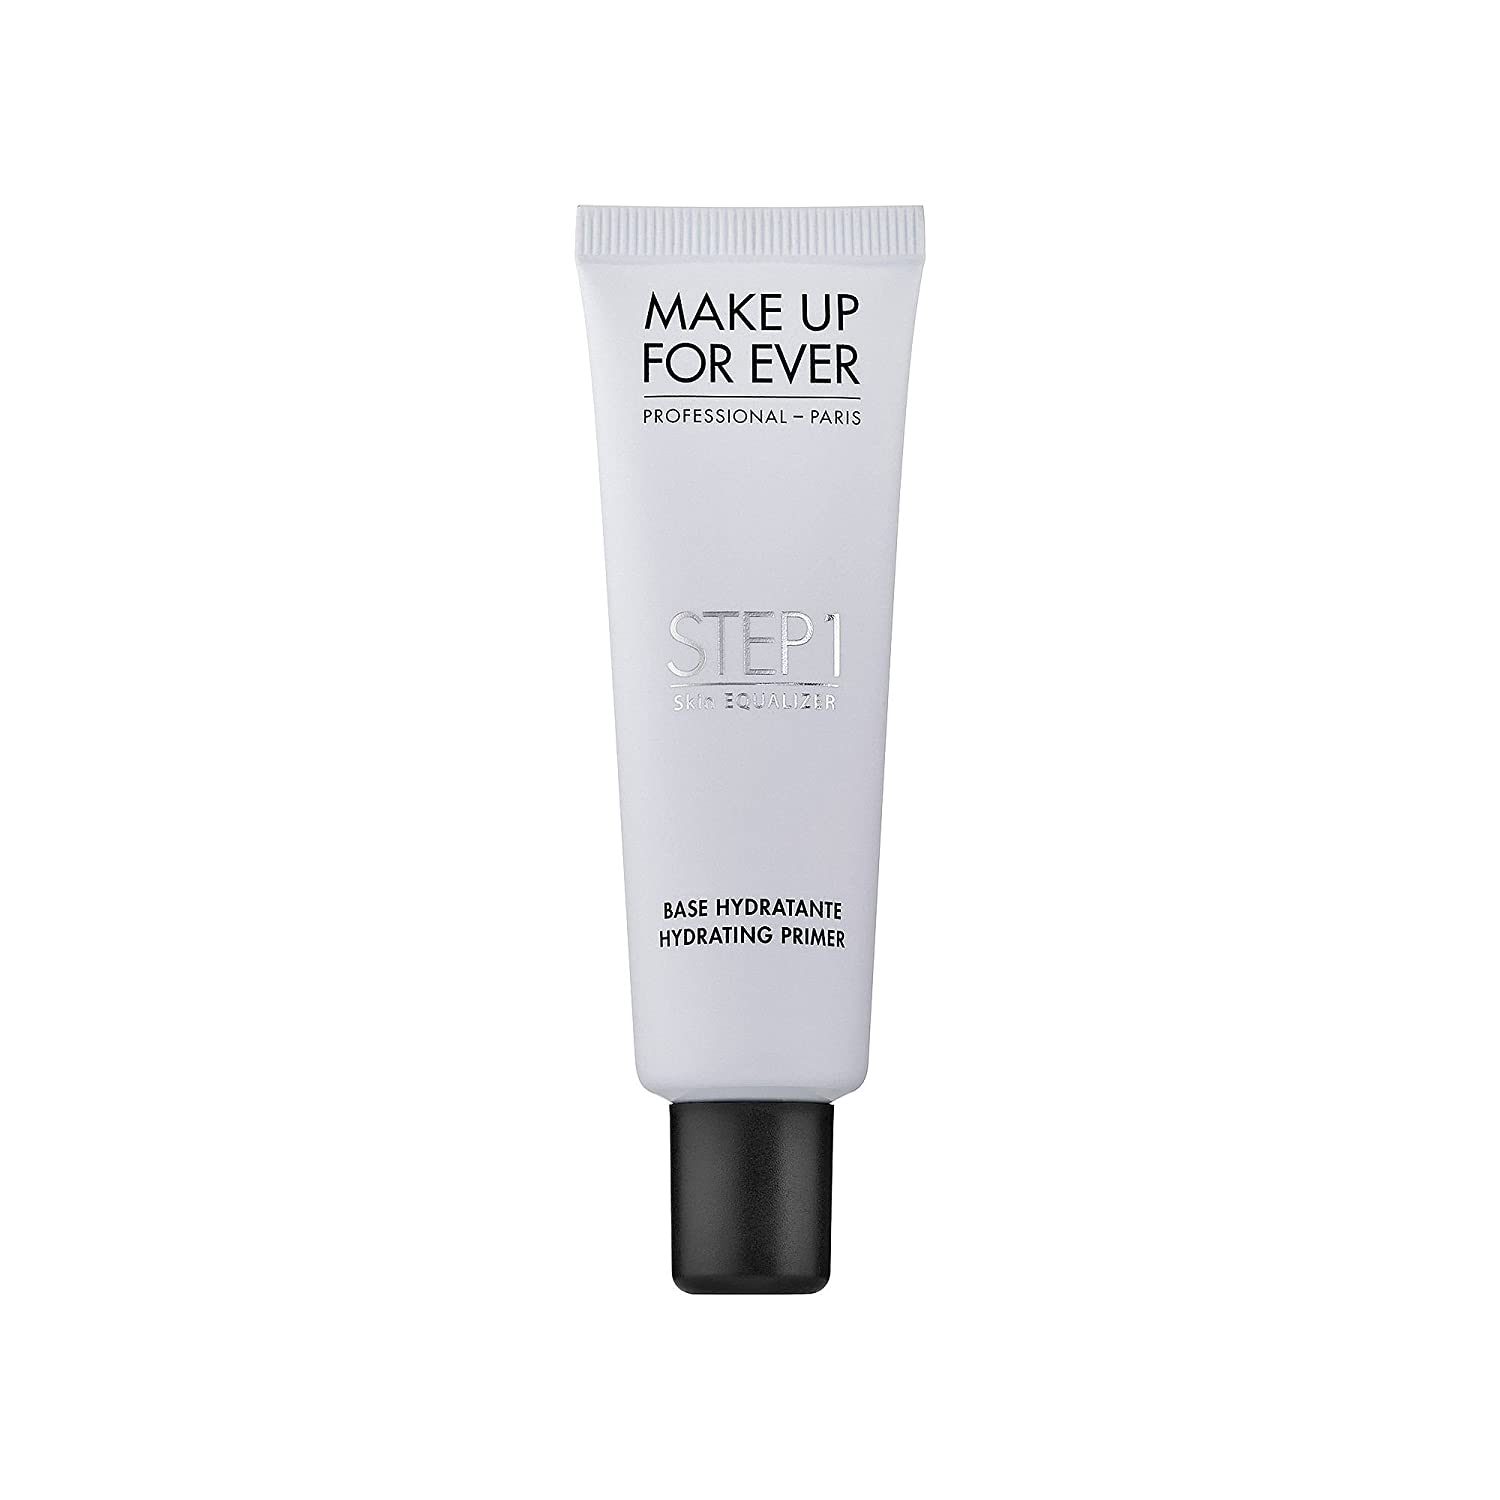 Make Up For Ever Step 1 Skin Equalizer, No. 3 Hydrating Primer, 1 Ounce